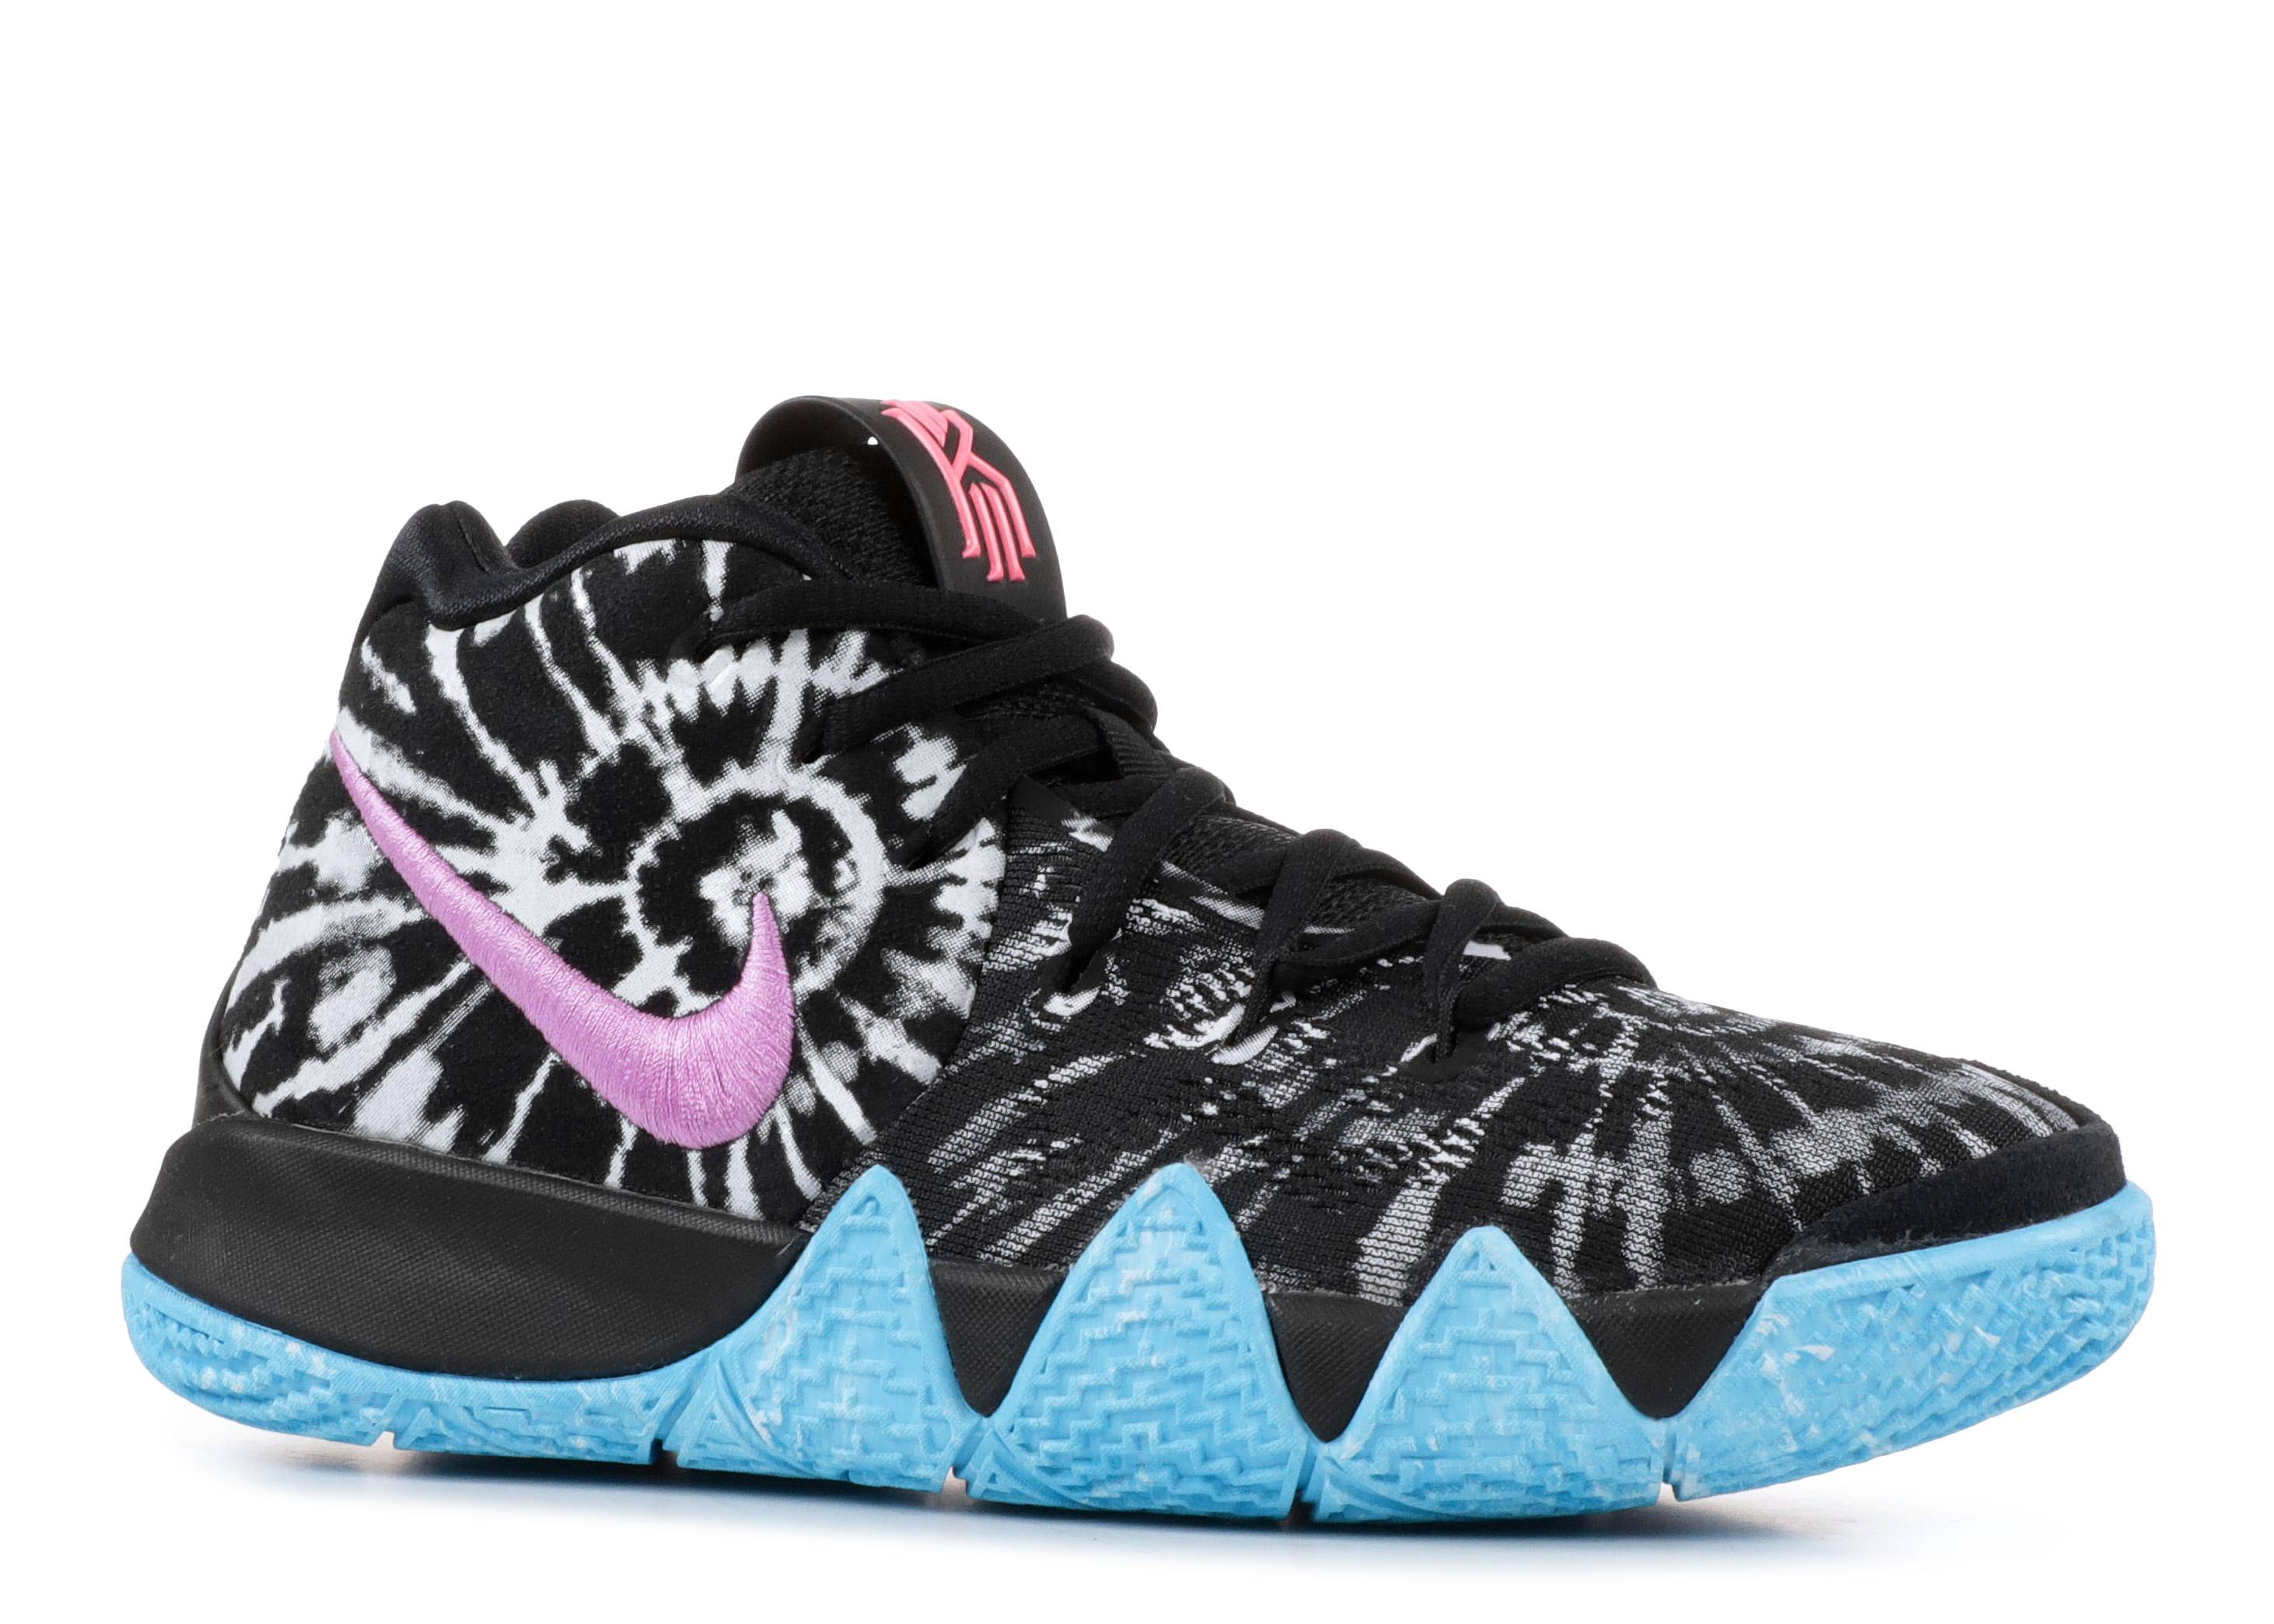 0399c181f9f5 Kyrie 4 As (gs)